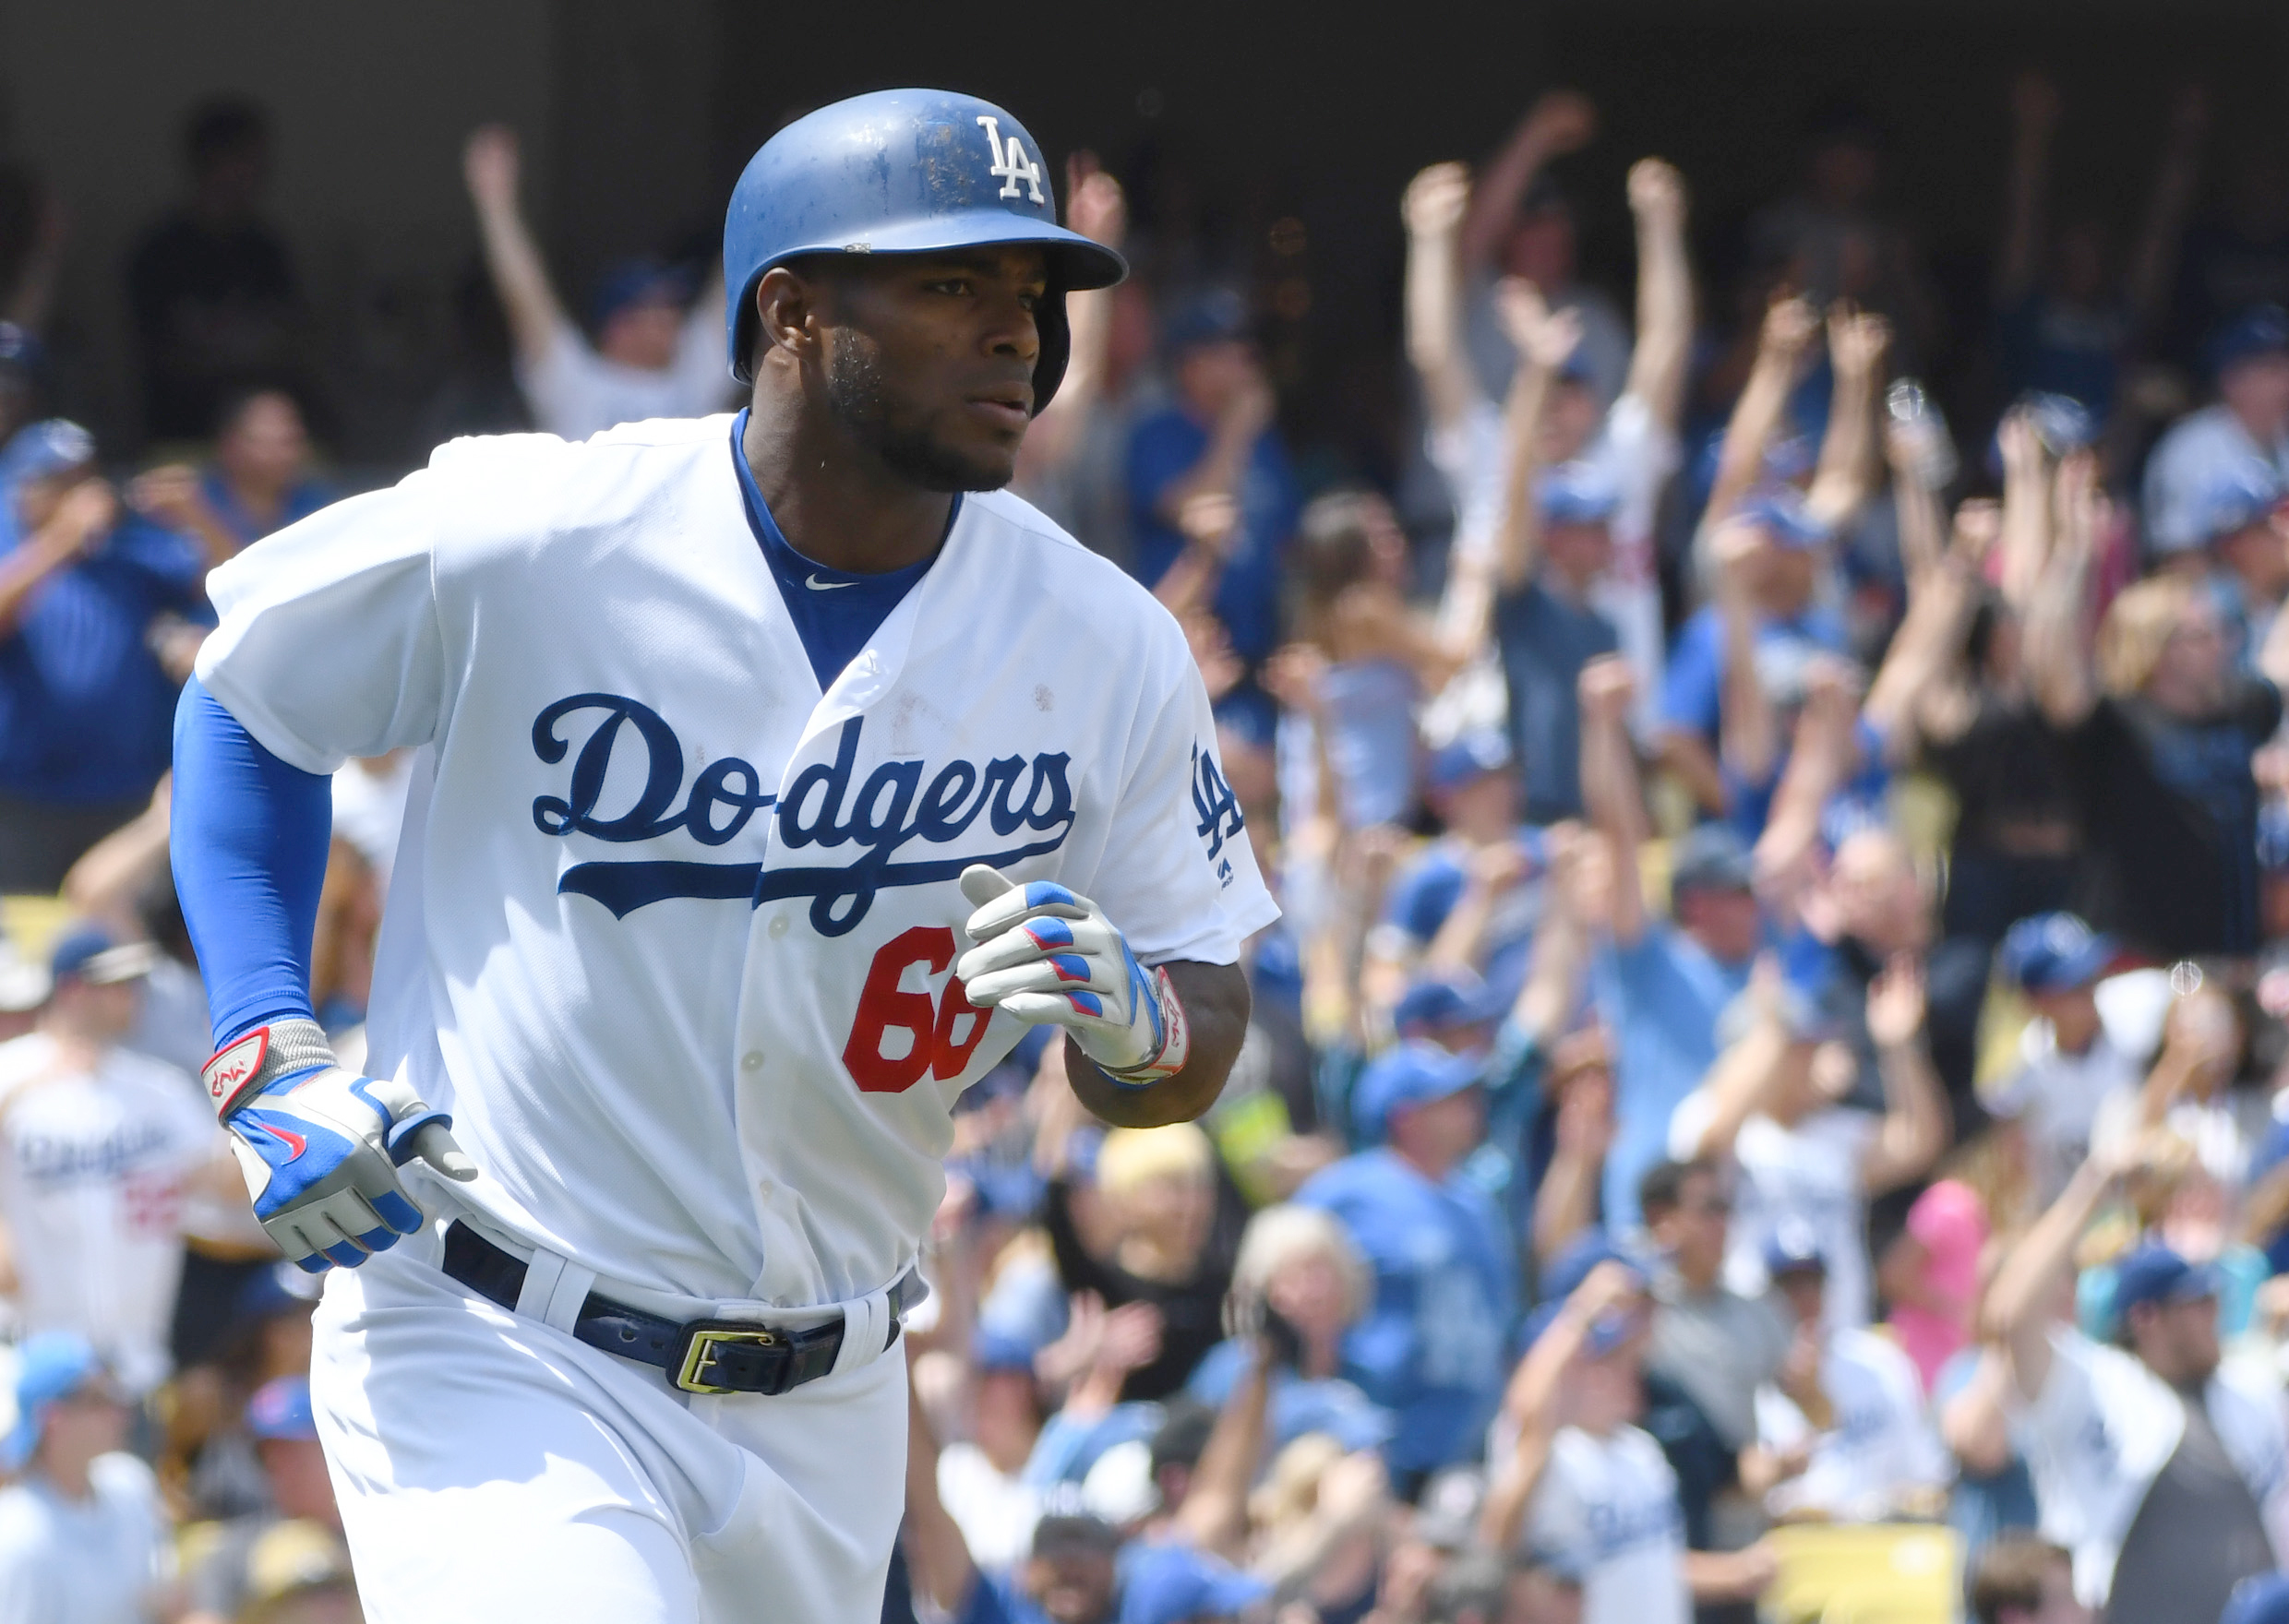 Apr 6, 2017; Los Angeles, CA, USA; Los Angeles Dodgers right fielder Yasiel Puig (66) runs the bases after hitting his second two run home run of the game against the San Diego Padres in the fourth inning at Dodger Stadium. Mandatory Credit: Jayne Kamin-Oncea-USA TODAY Sports